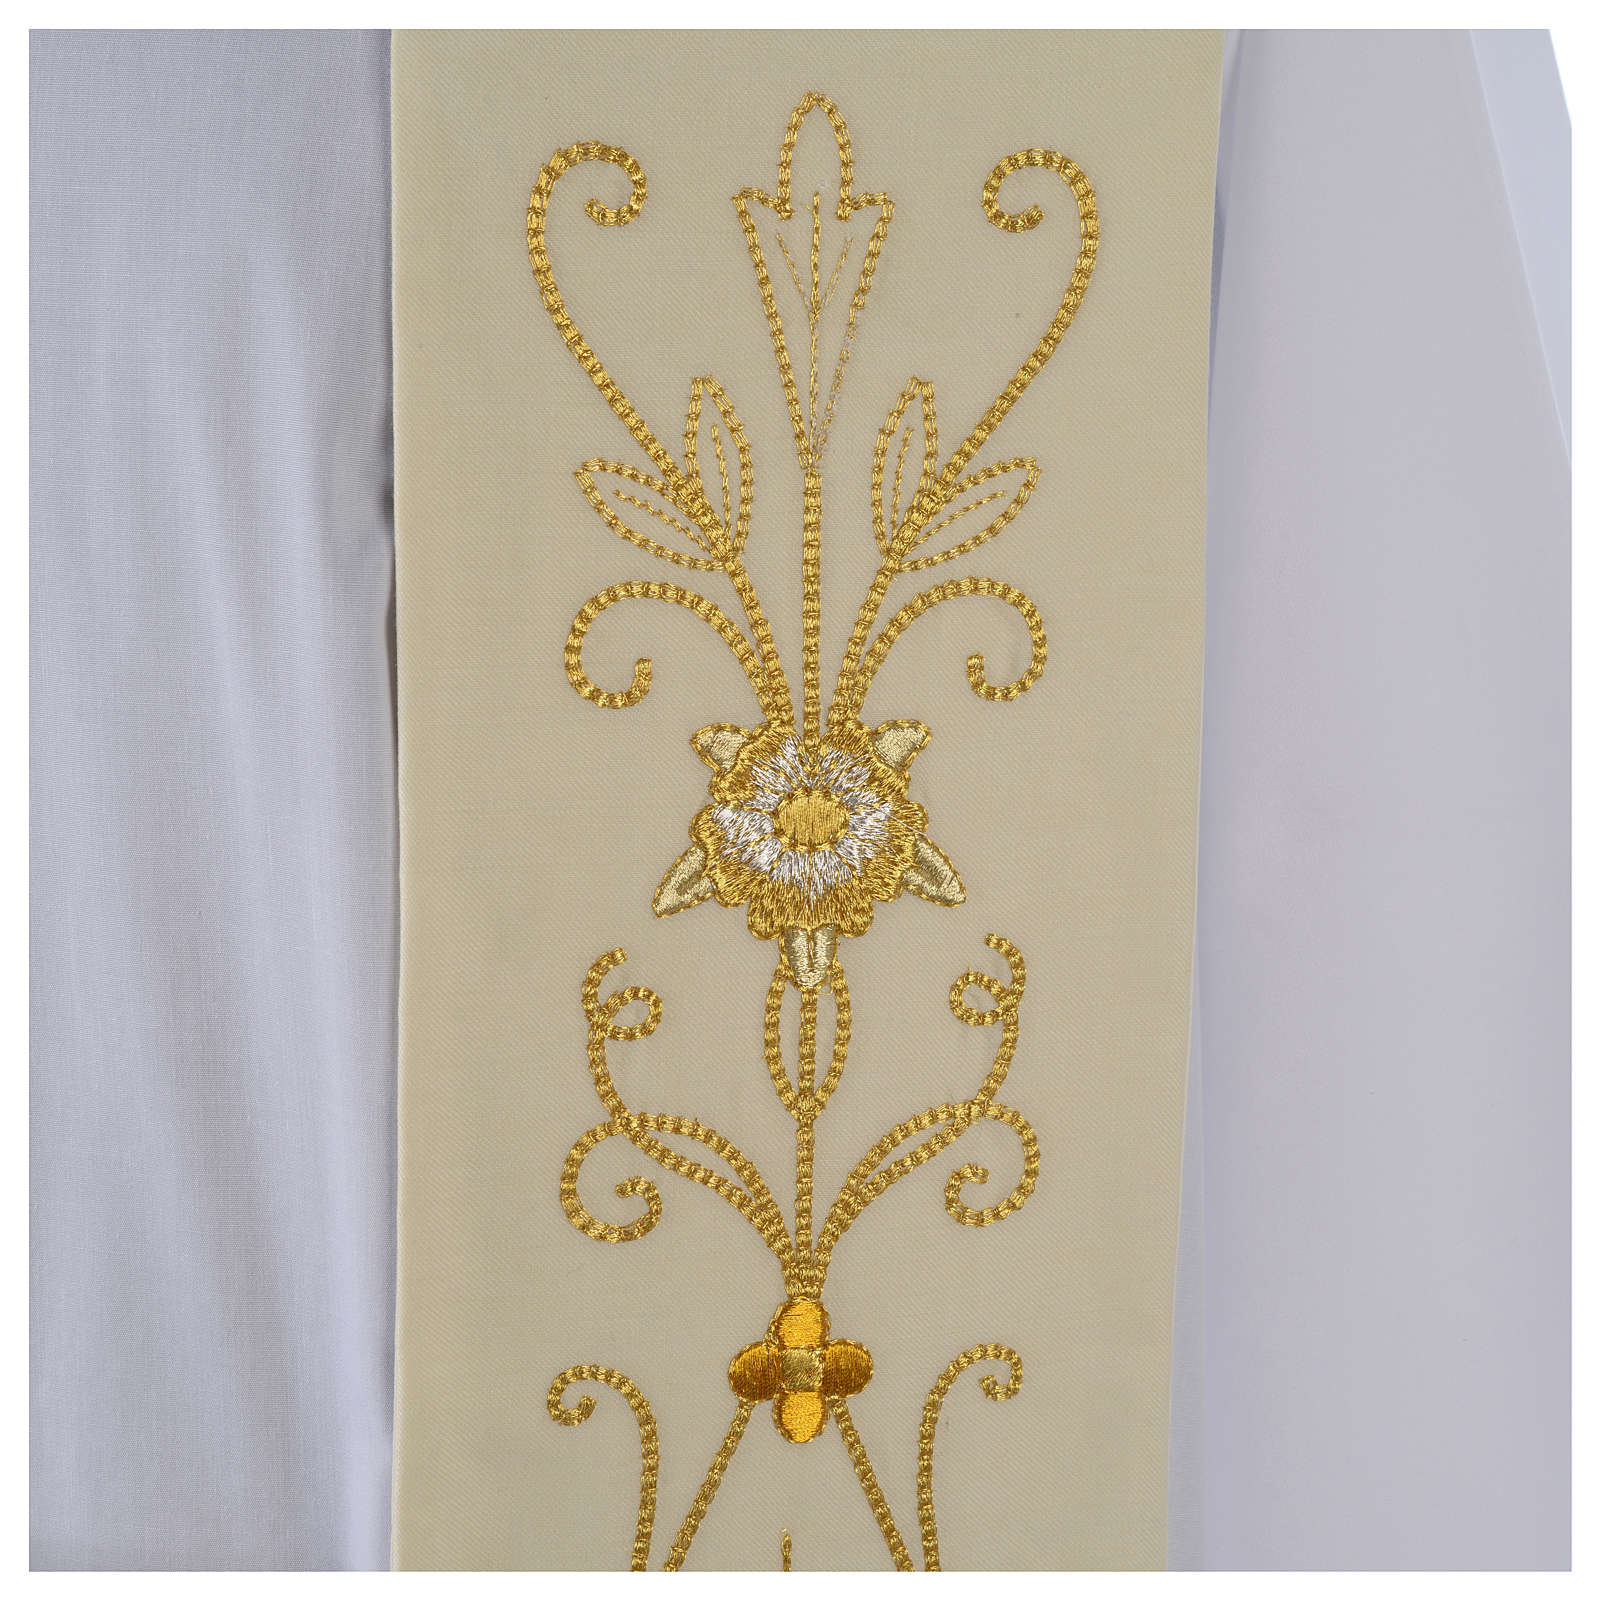 White Clergy Stole in wool, ancient style embroideries 4